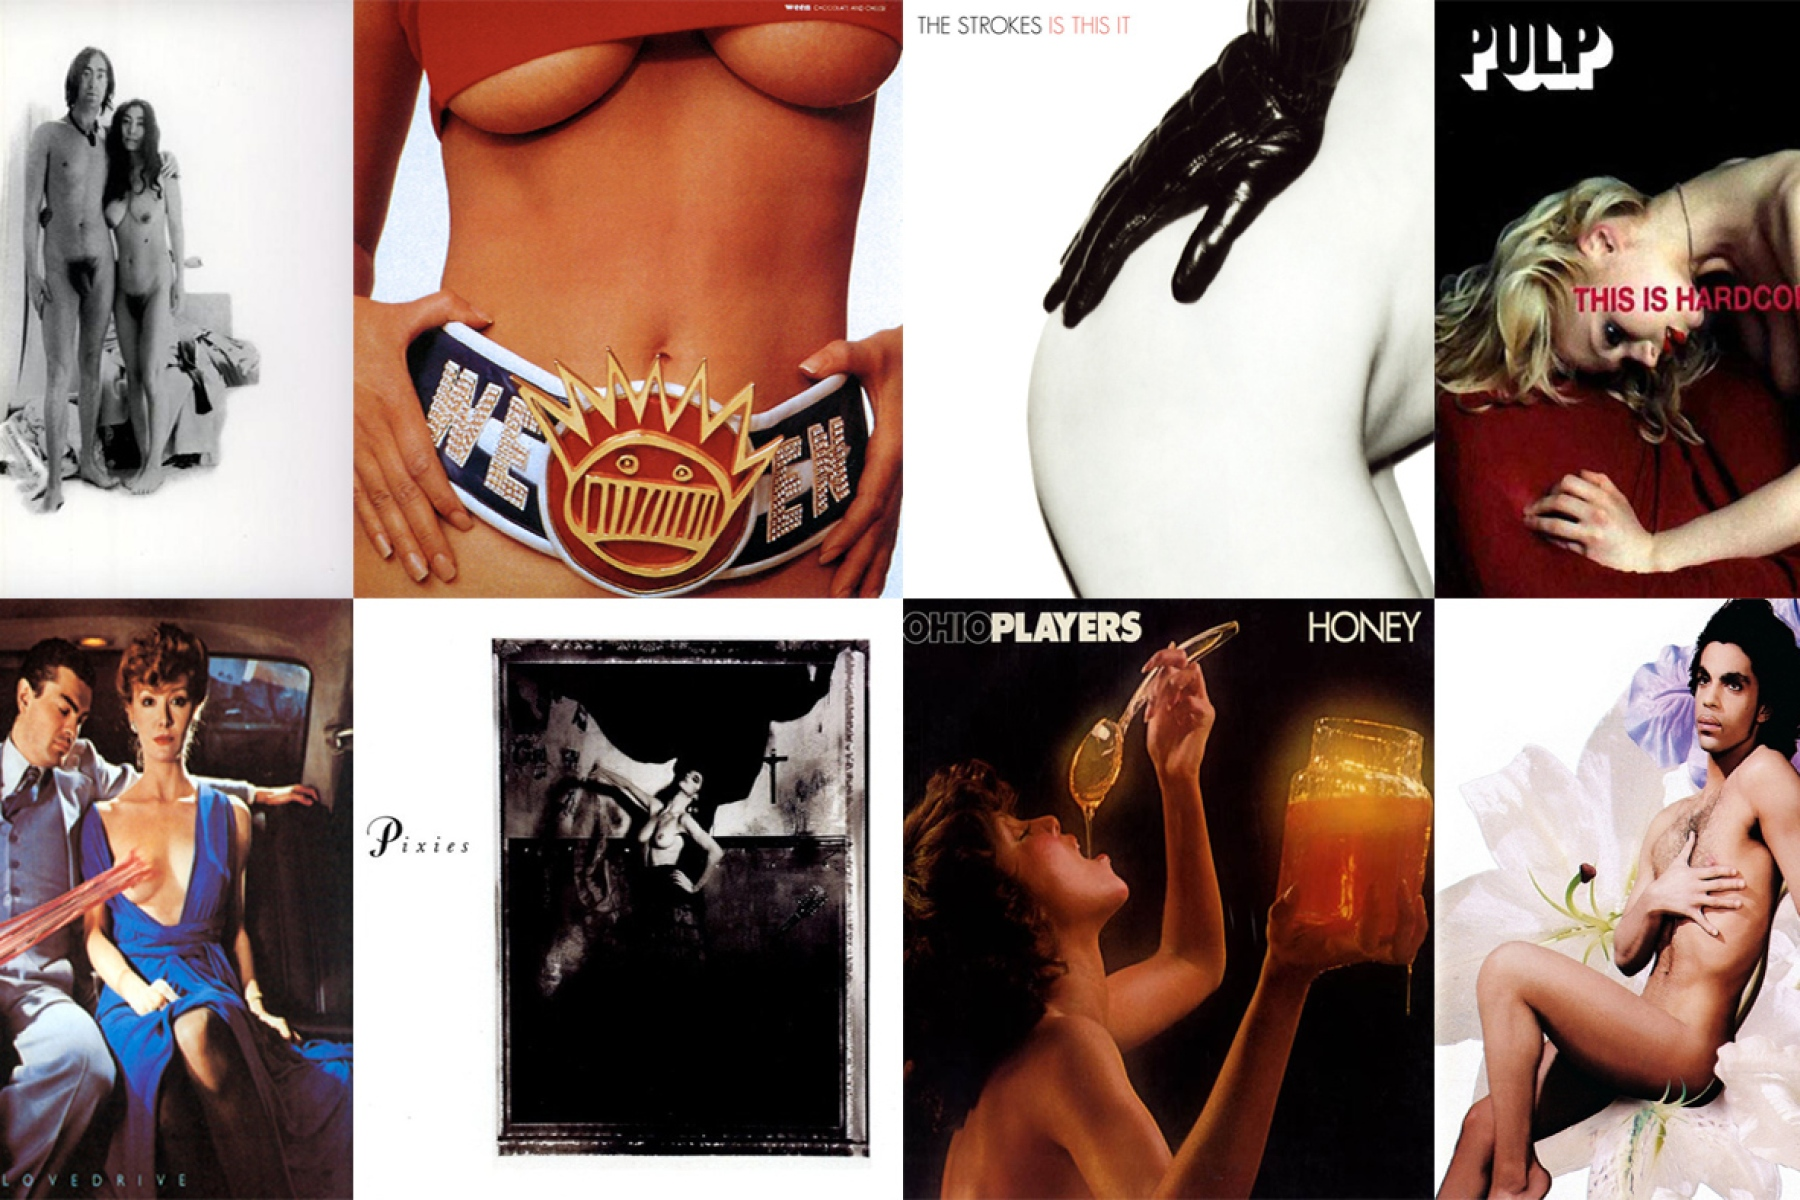 20 Dirtiest Album Covers of All Time: From Prince to the Strokes ...